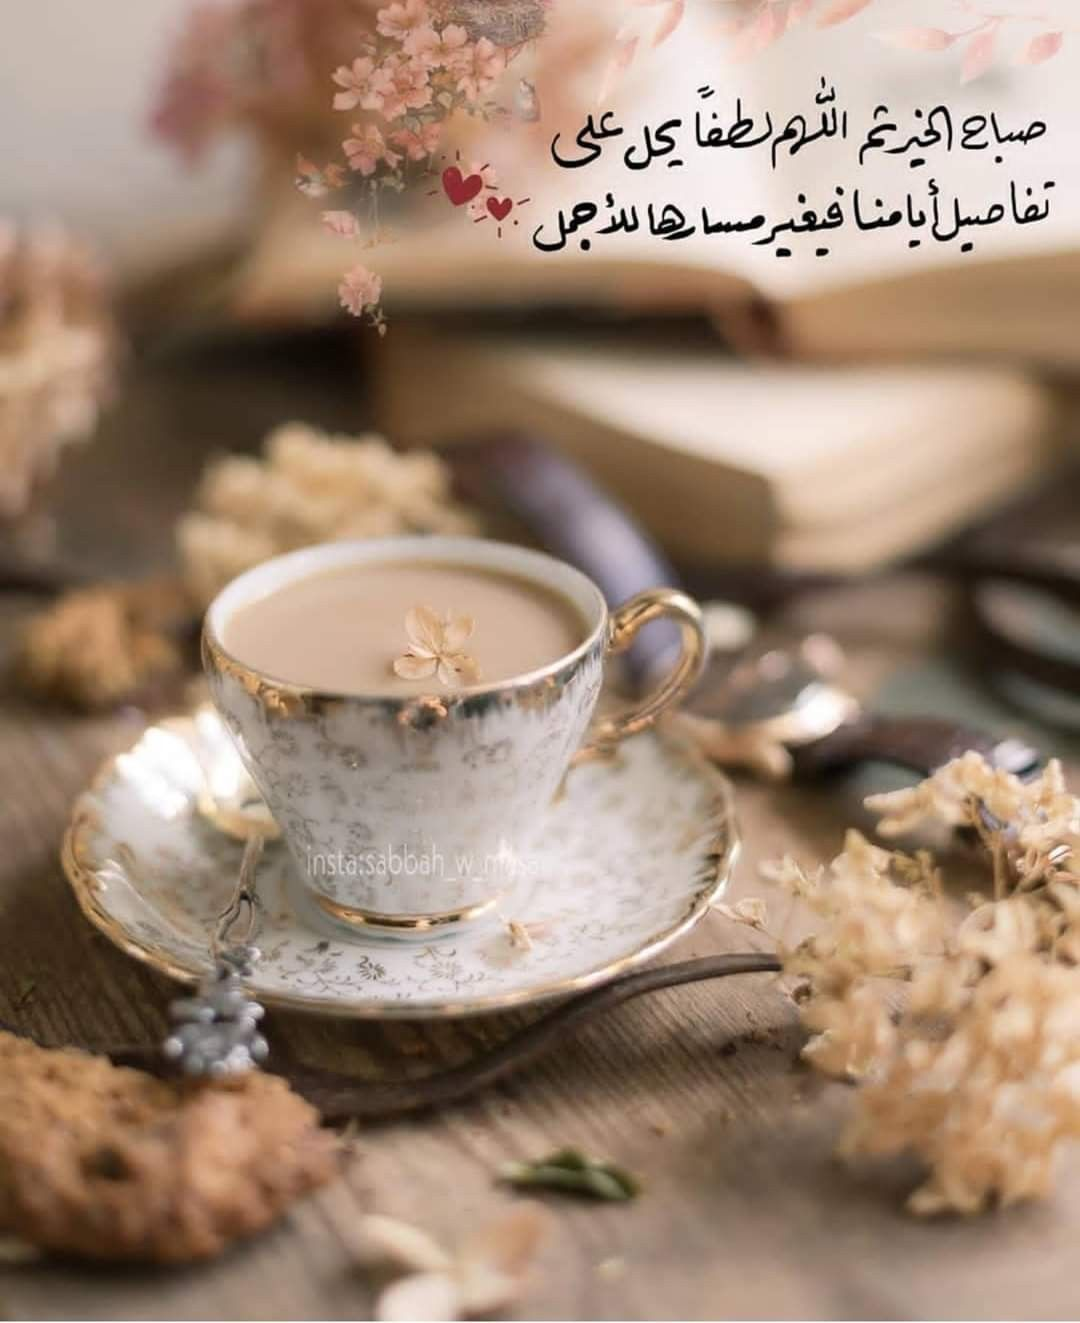 Pin By Feeling F On صباح مساء Morning Images Romantic Love Quotes Tea Cups